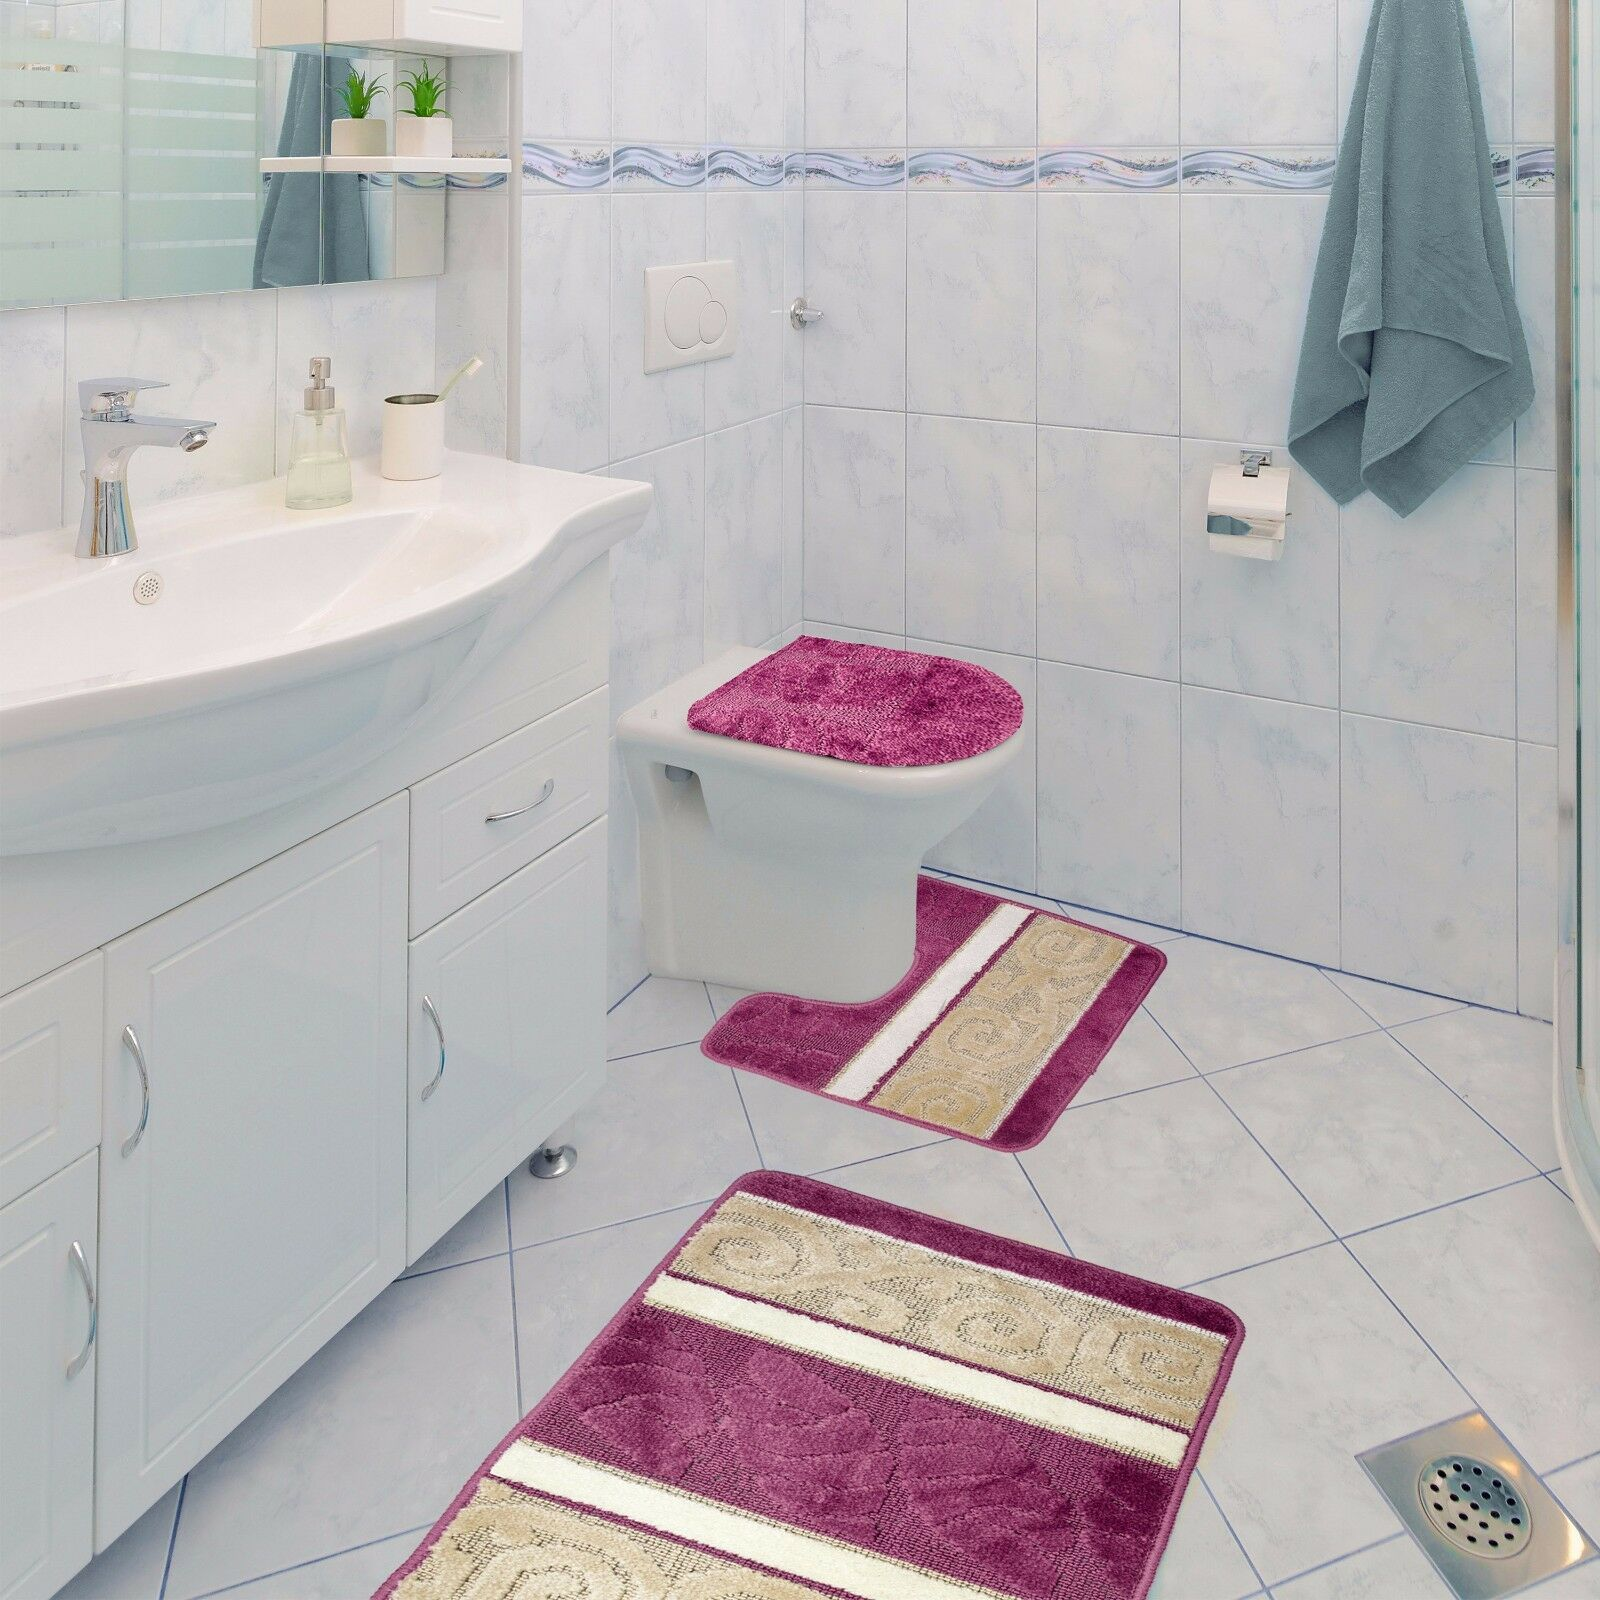 Shower Bathroom Sets: Scroll 3 Piece Bathroom Rug Set, Bath Rug, Contour Rug